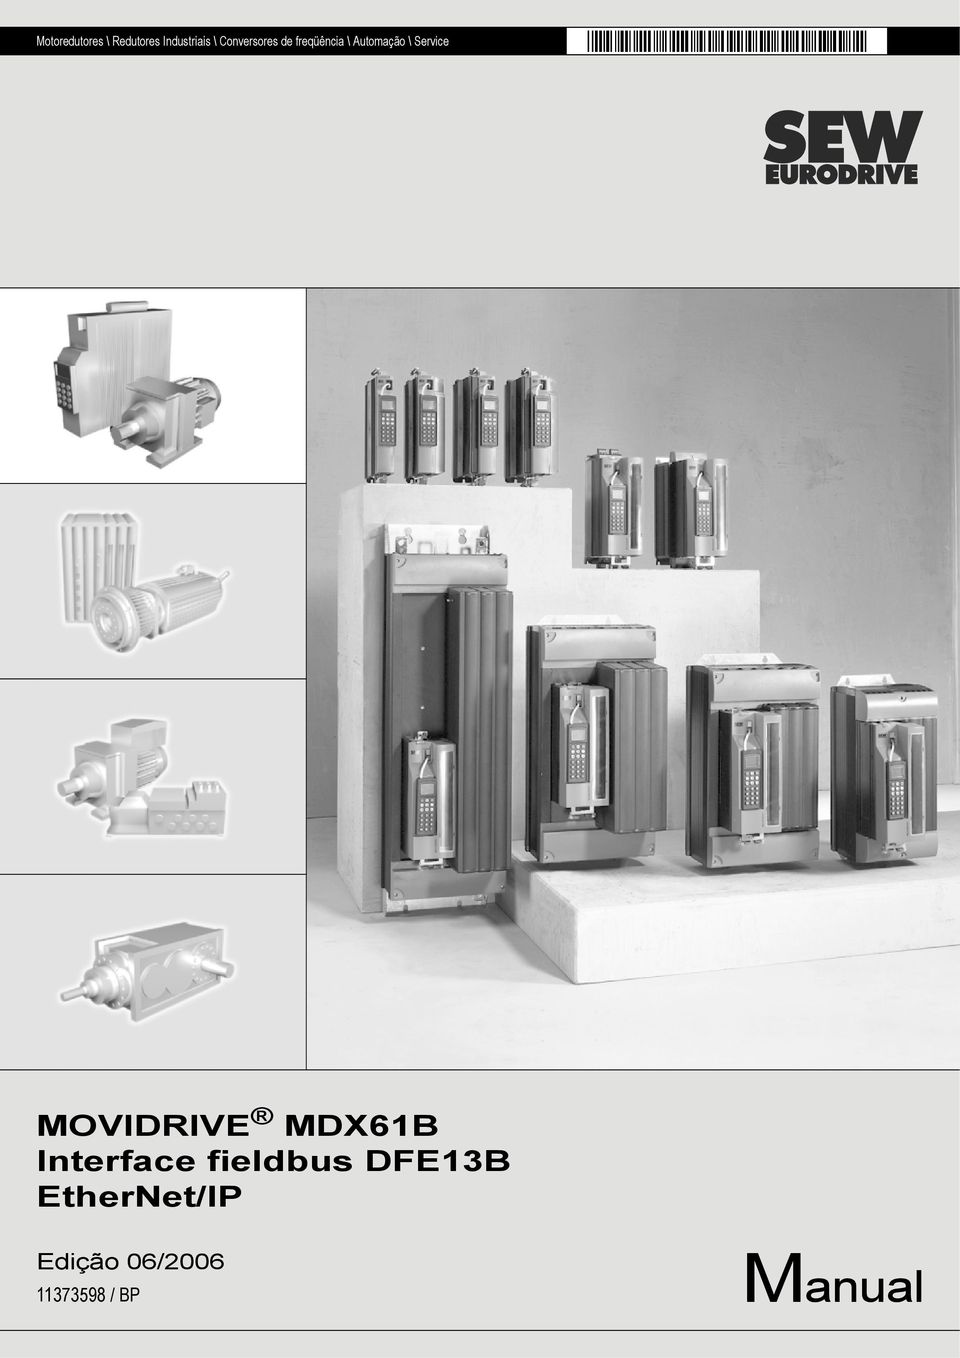 Service MOVIDRIVE MDX61B Interface fieldbus